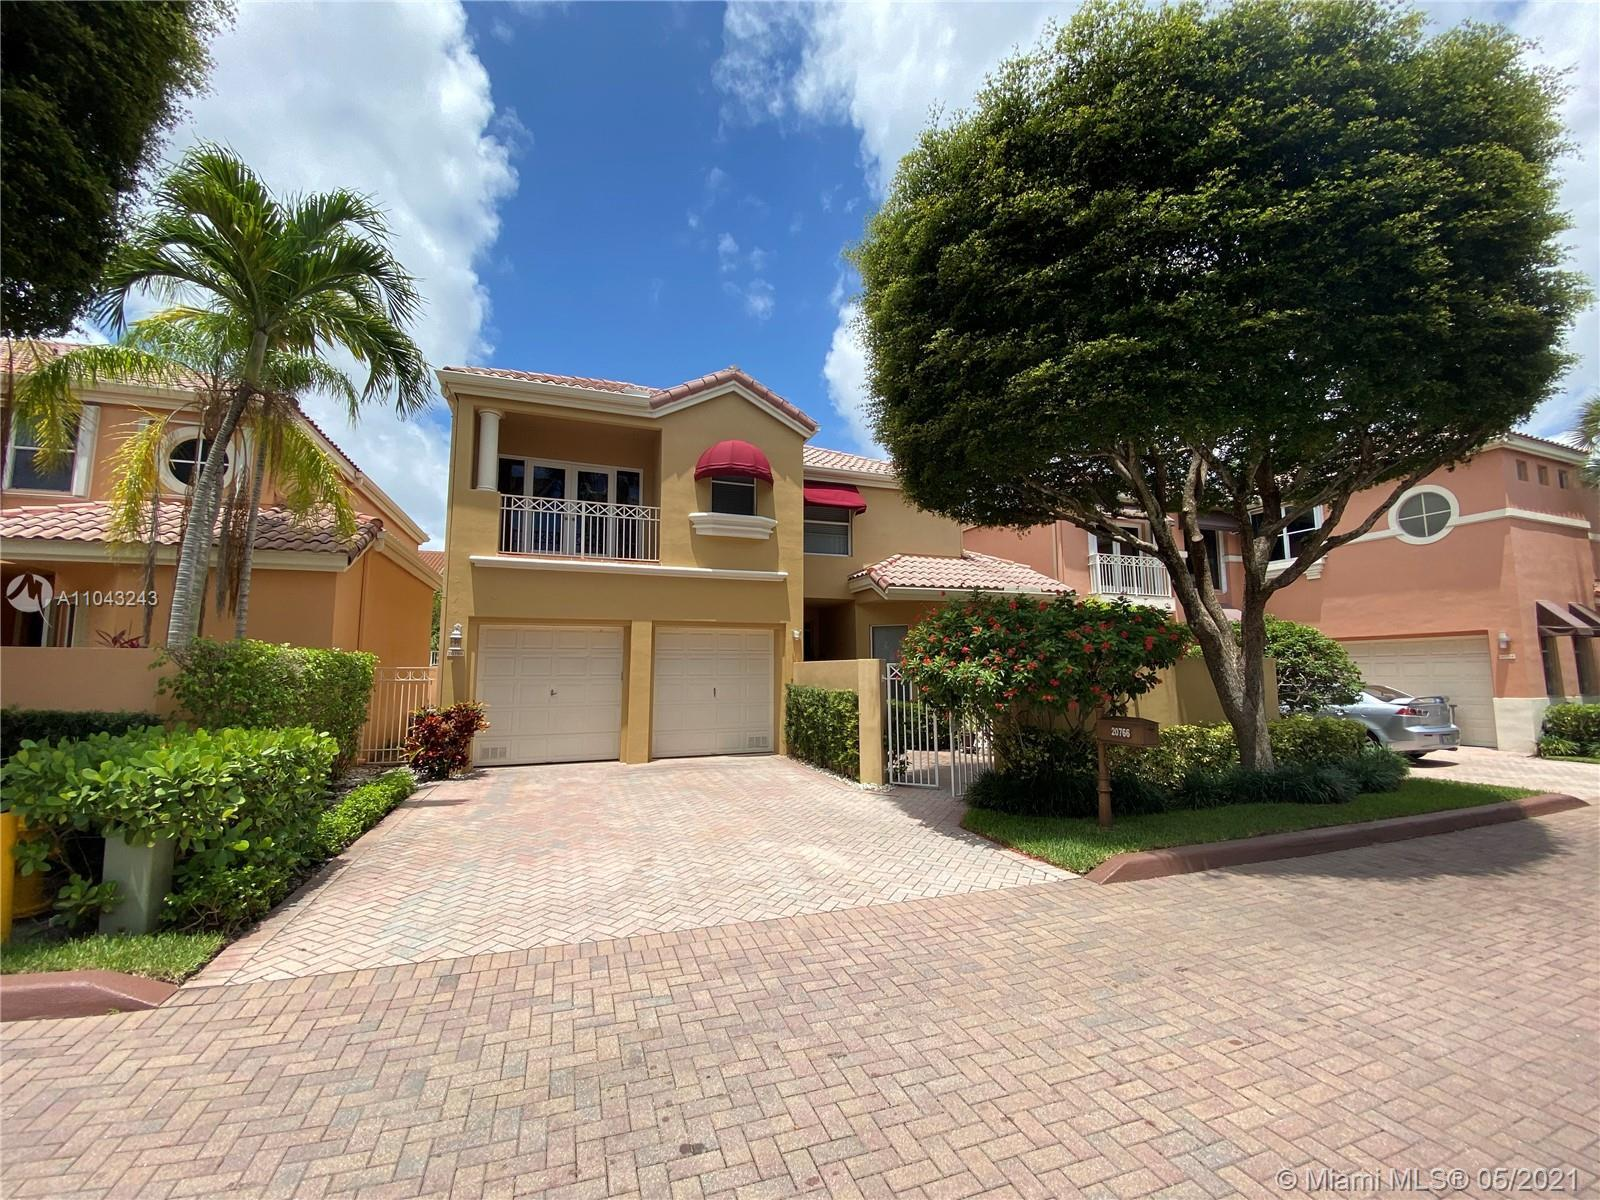 Amazing 3/3 with, stainless steel appliances, private pool and patio area, located in the beautiful